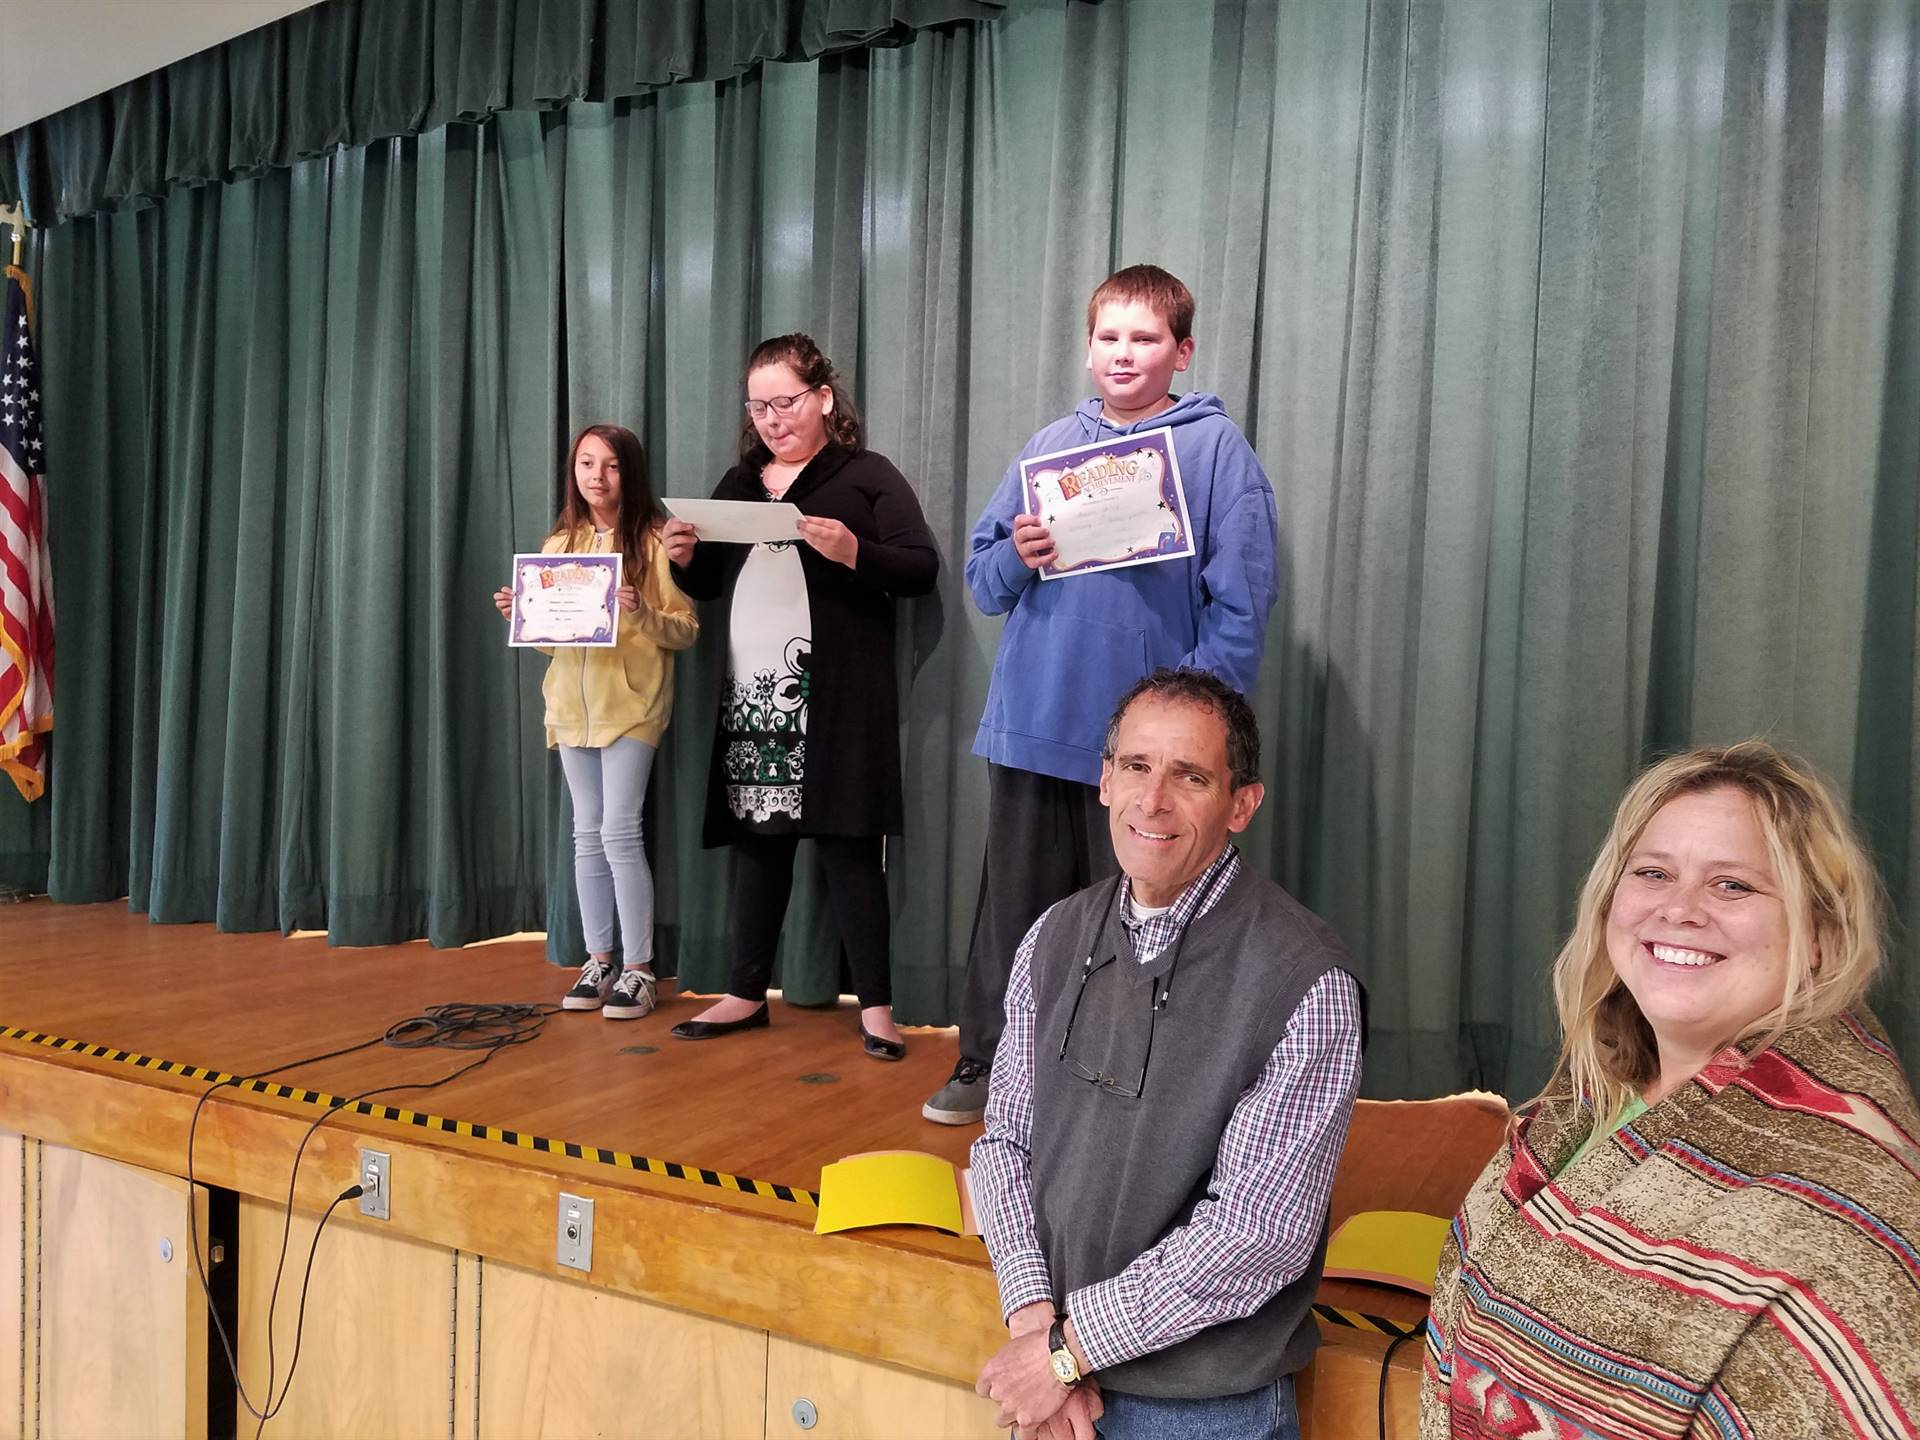 Mr. Art and Mrs. Gordon with Reading award recipients